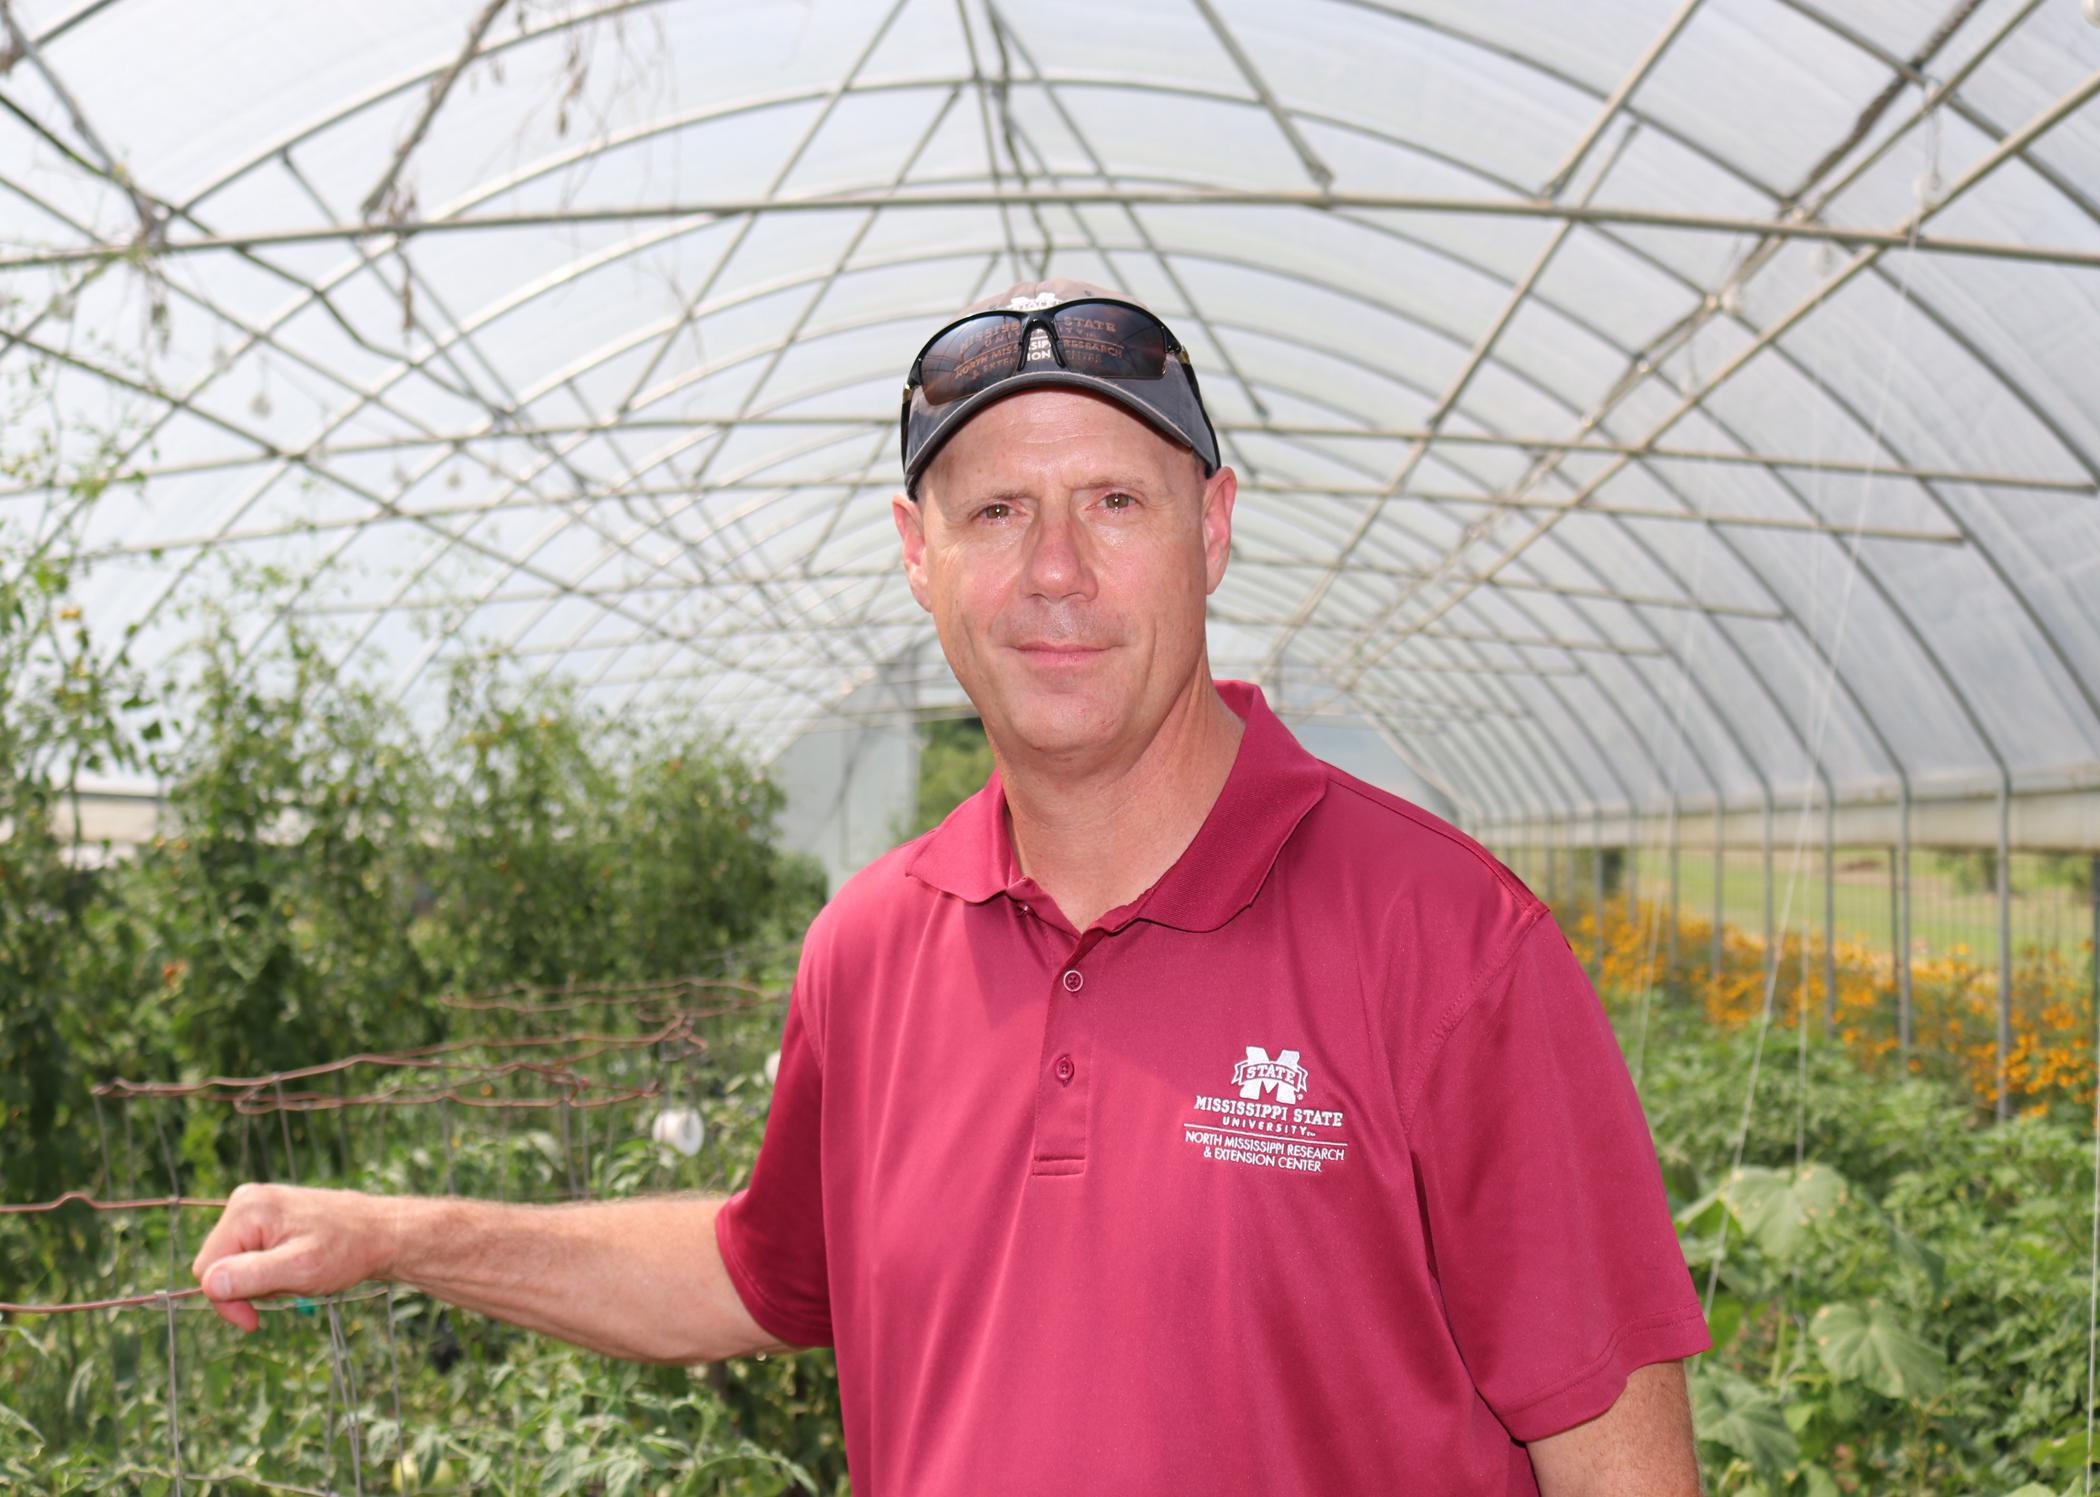 Man in a maroon shirt and baseball cap in a greenhouse.